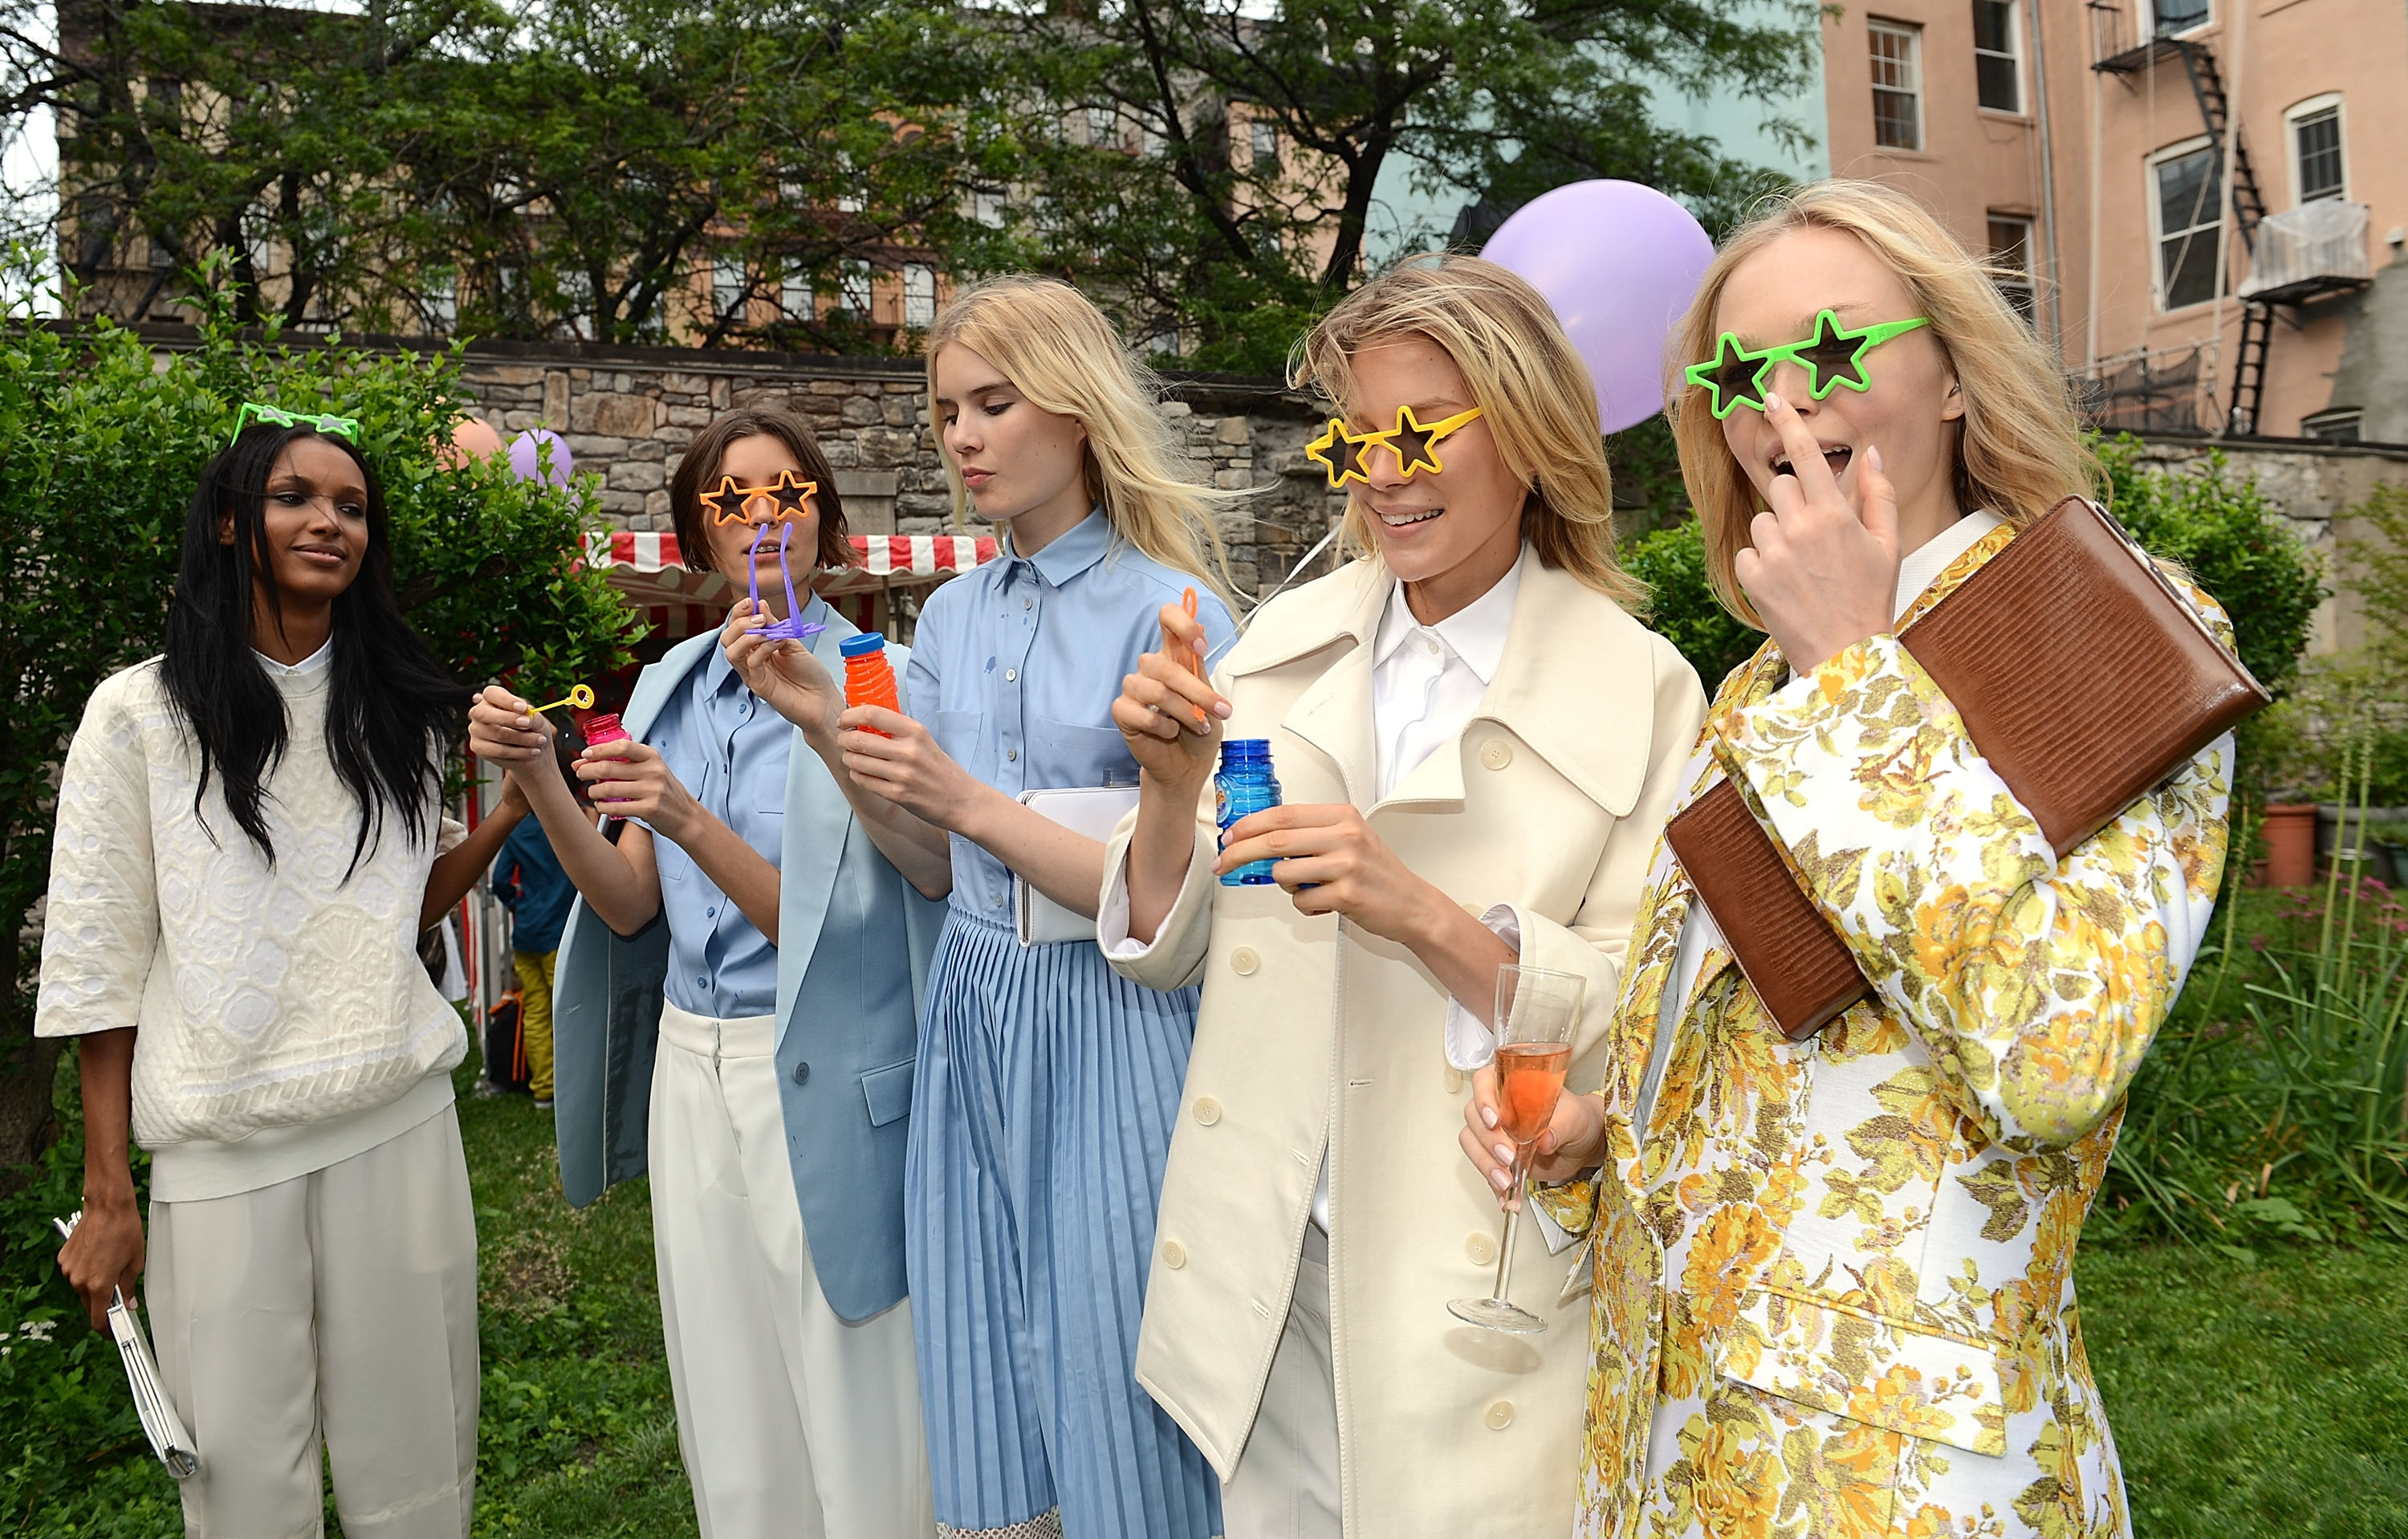 Spring Cocktail Garden Party Celebrity Fashion Show Hearing 88